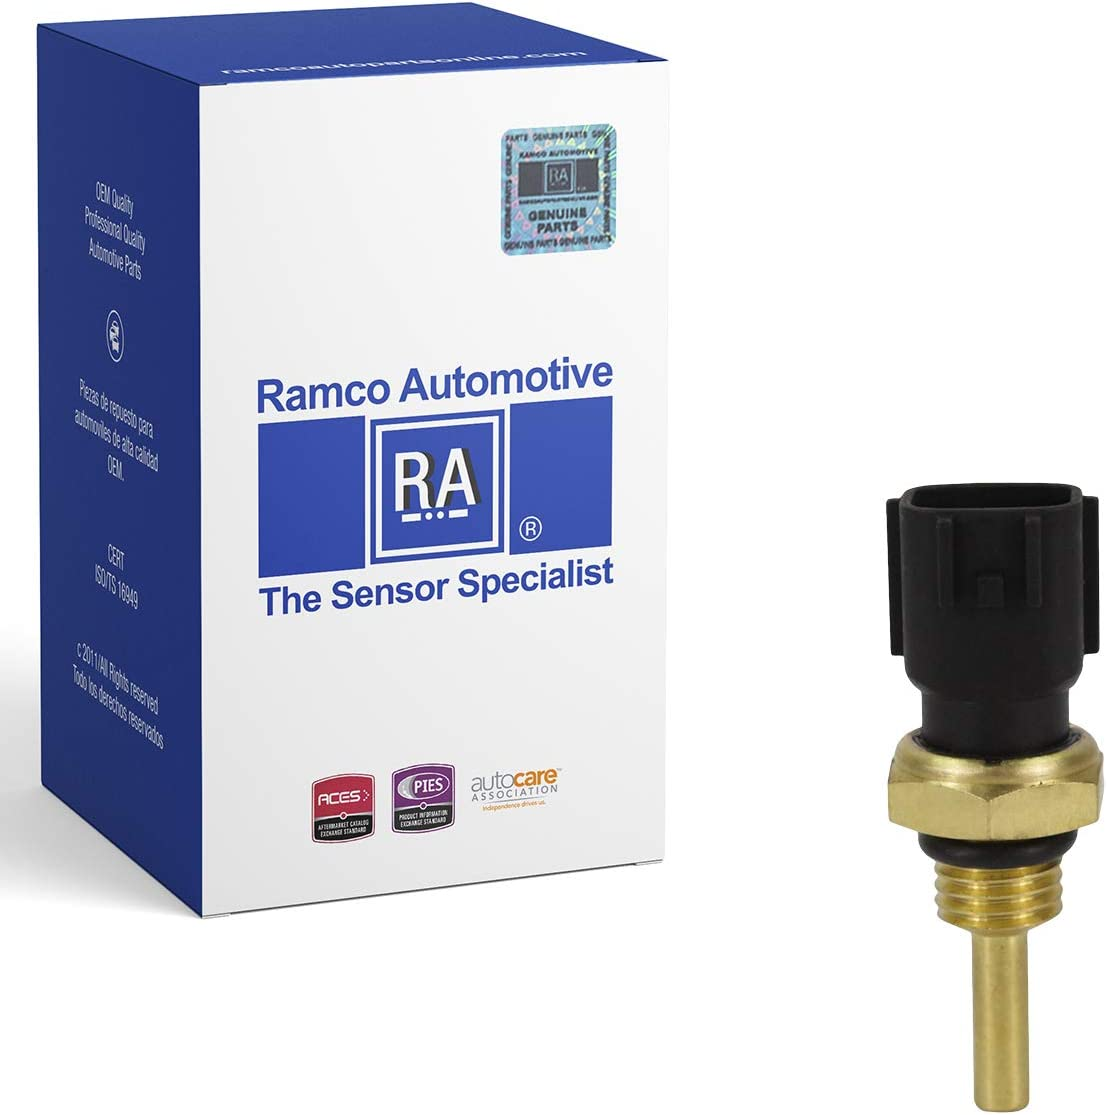 RA-TS1006 Ramco Automotive Compatible with Wells SU4072 Standard Motor Products TX78 Engine Coolant Temperature Sensor